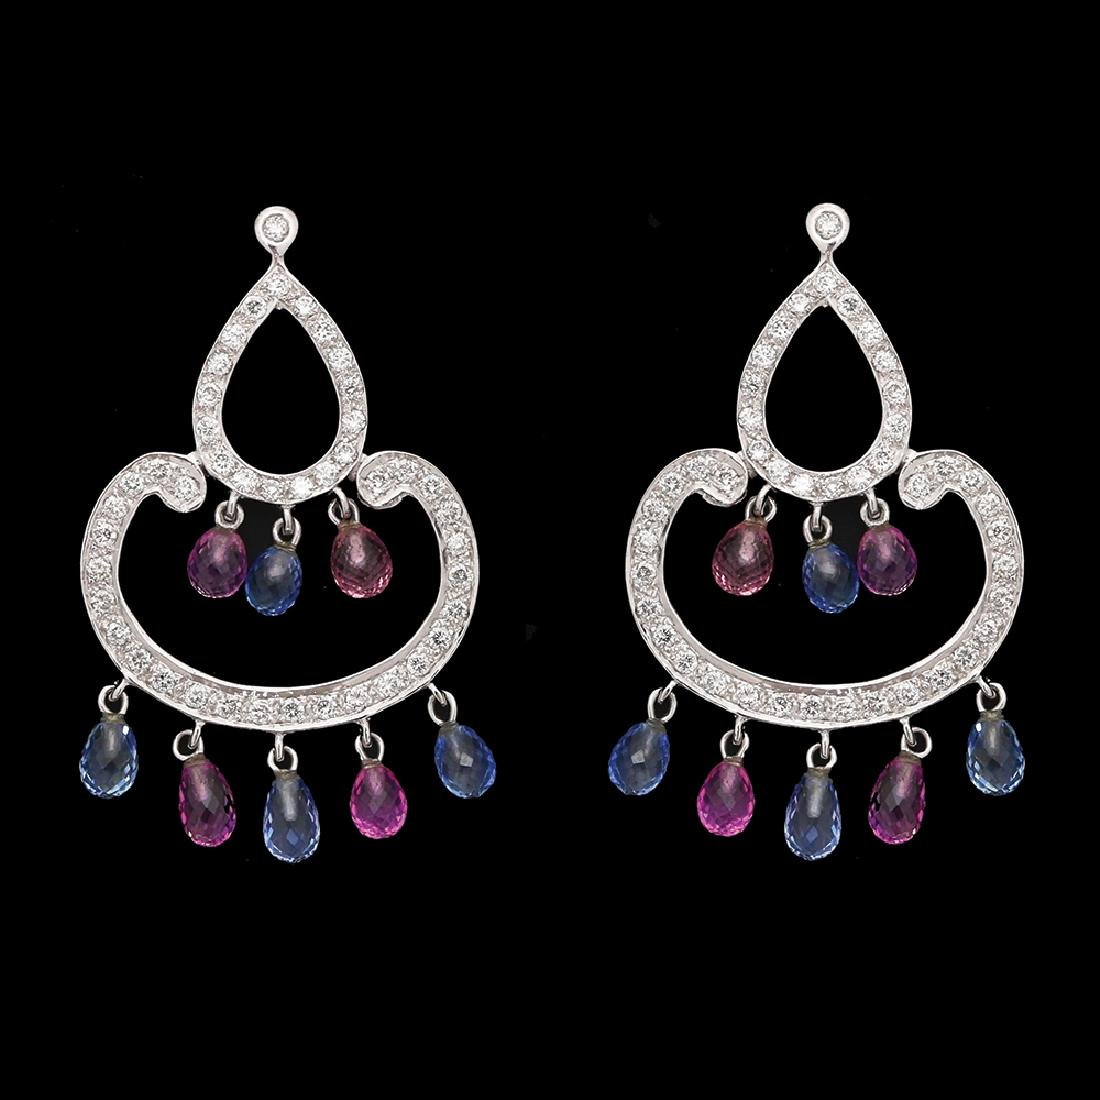 A PAIR OF 18K WHITE GOLD, CHANDELIER EARRINGS